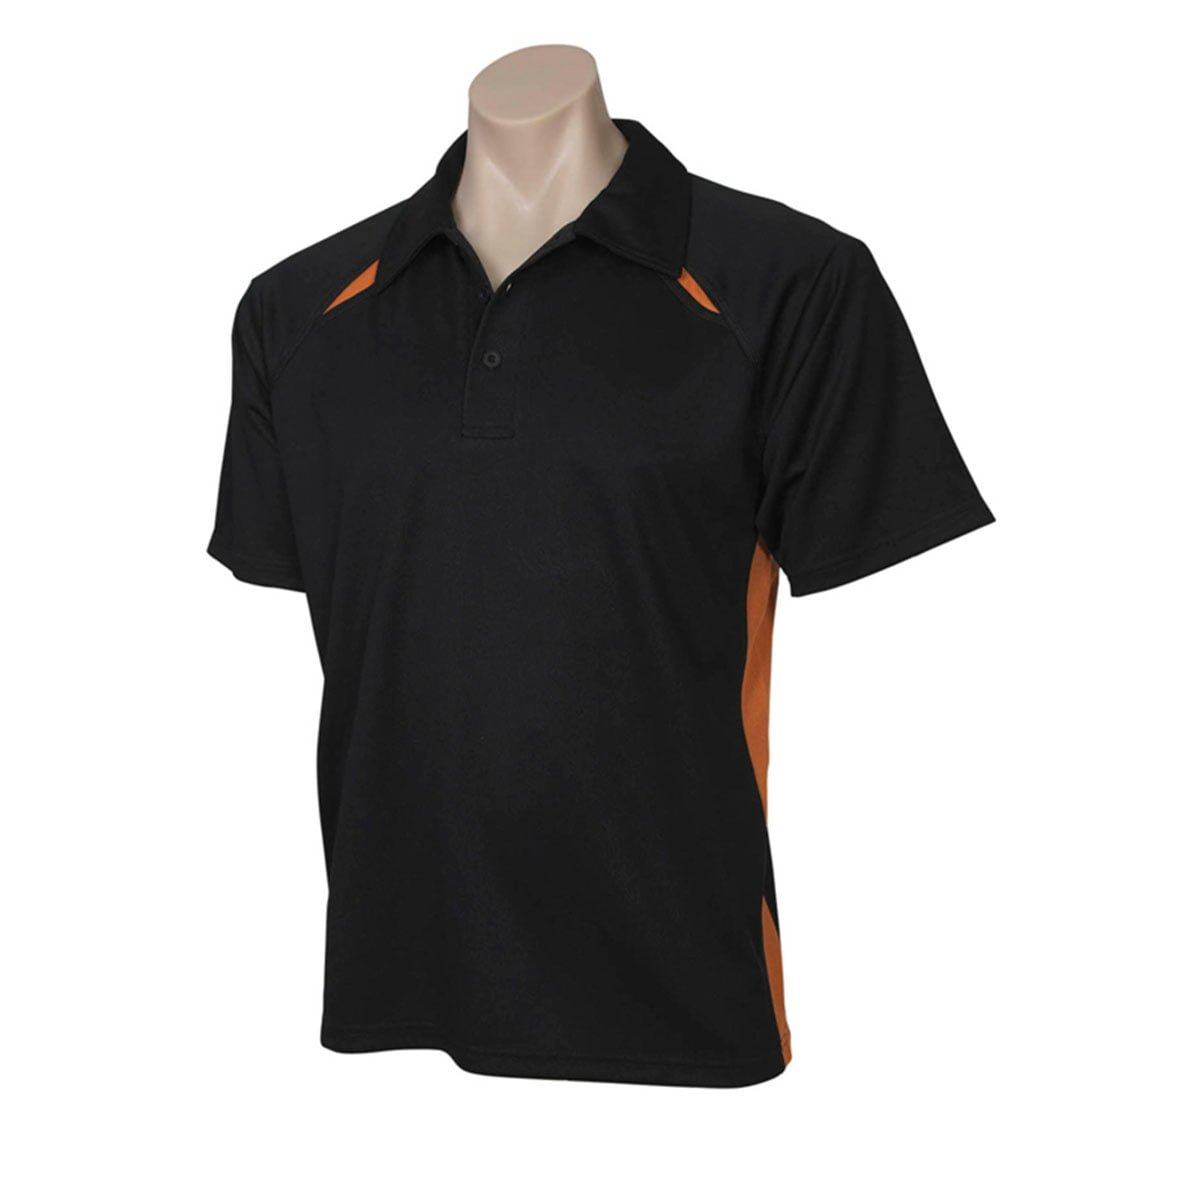 Mens Splice Polo-Black / Orange